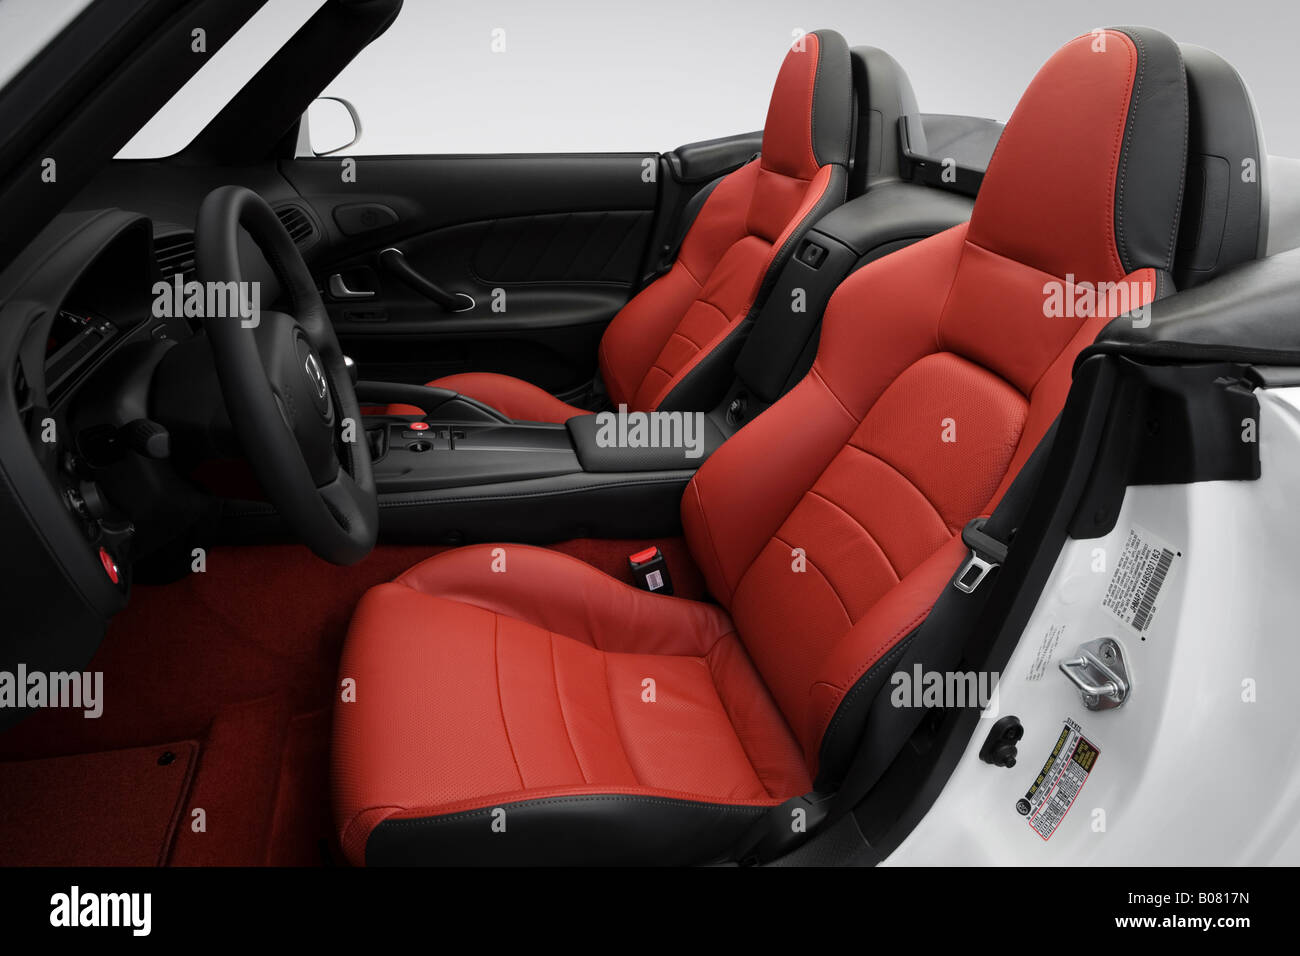 2008 honda s2000 in wei vordere sitze stockfoto bild 17386985 alamy. Black Bedroom Furniture Sets. Home Design Ideas